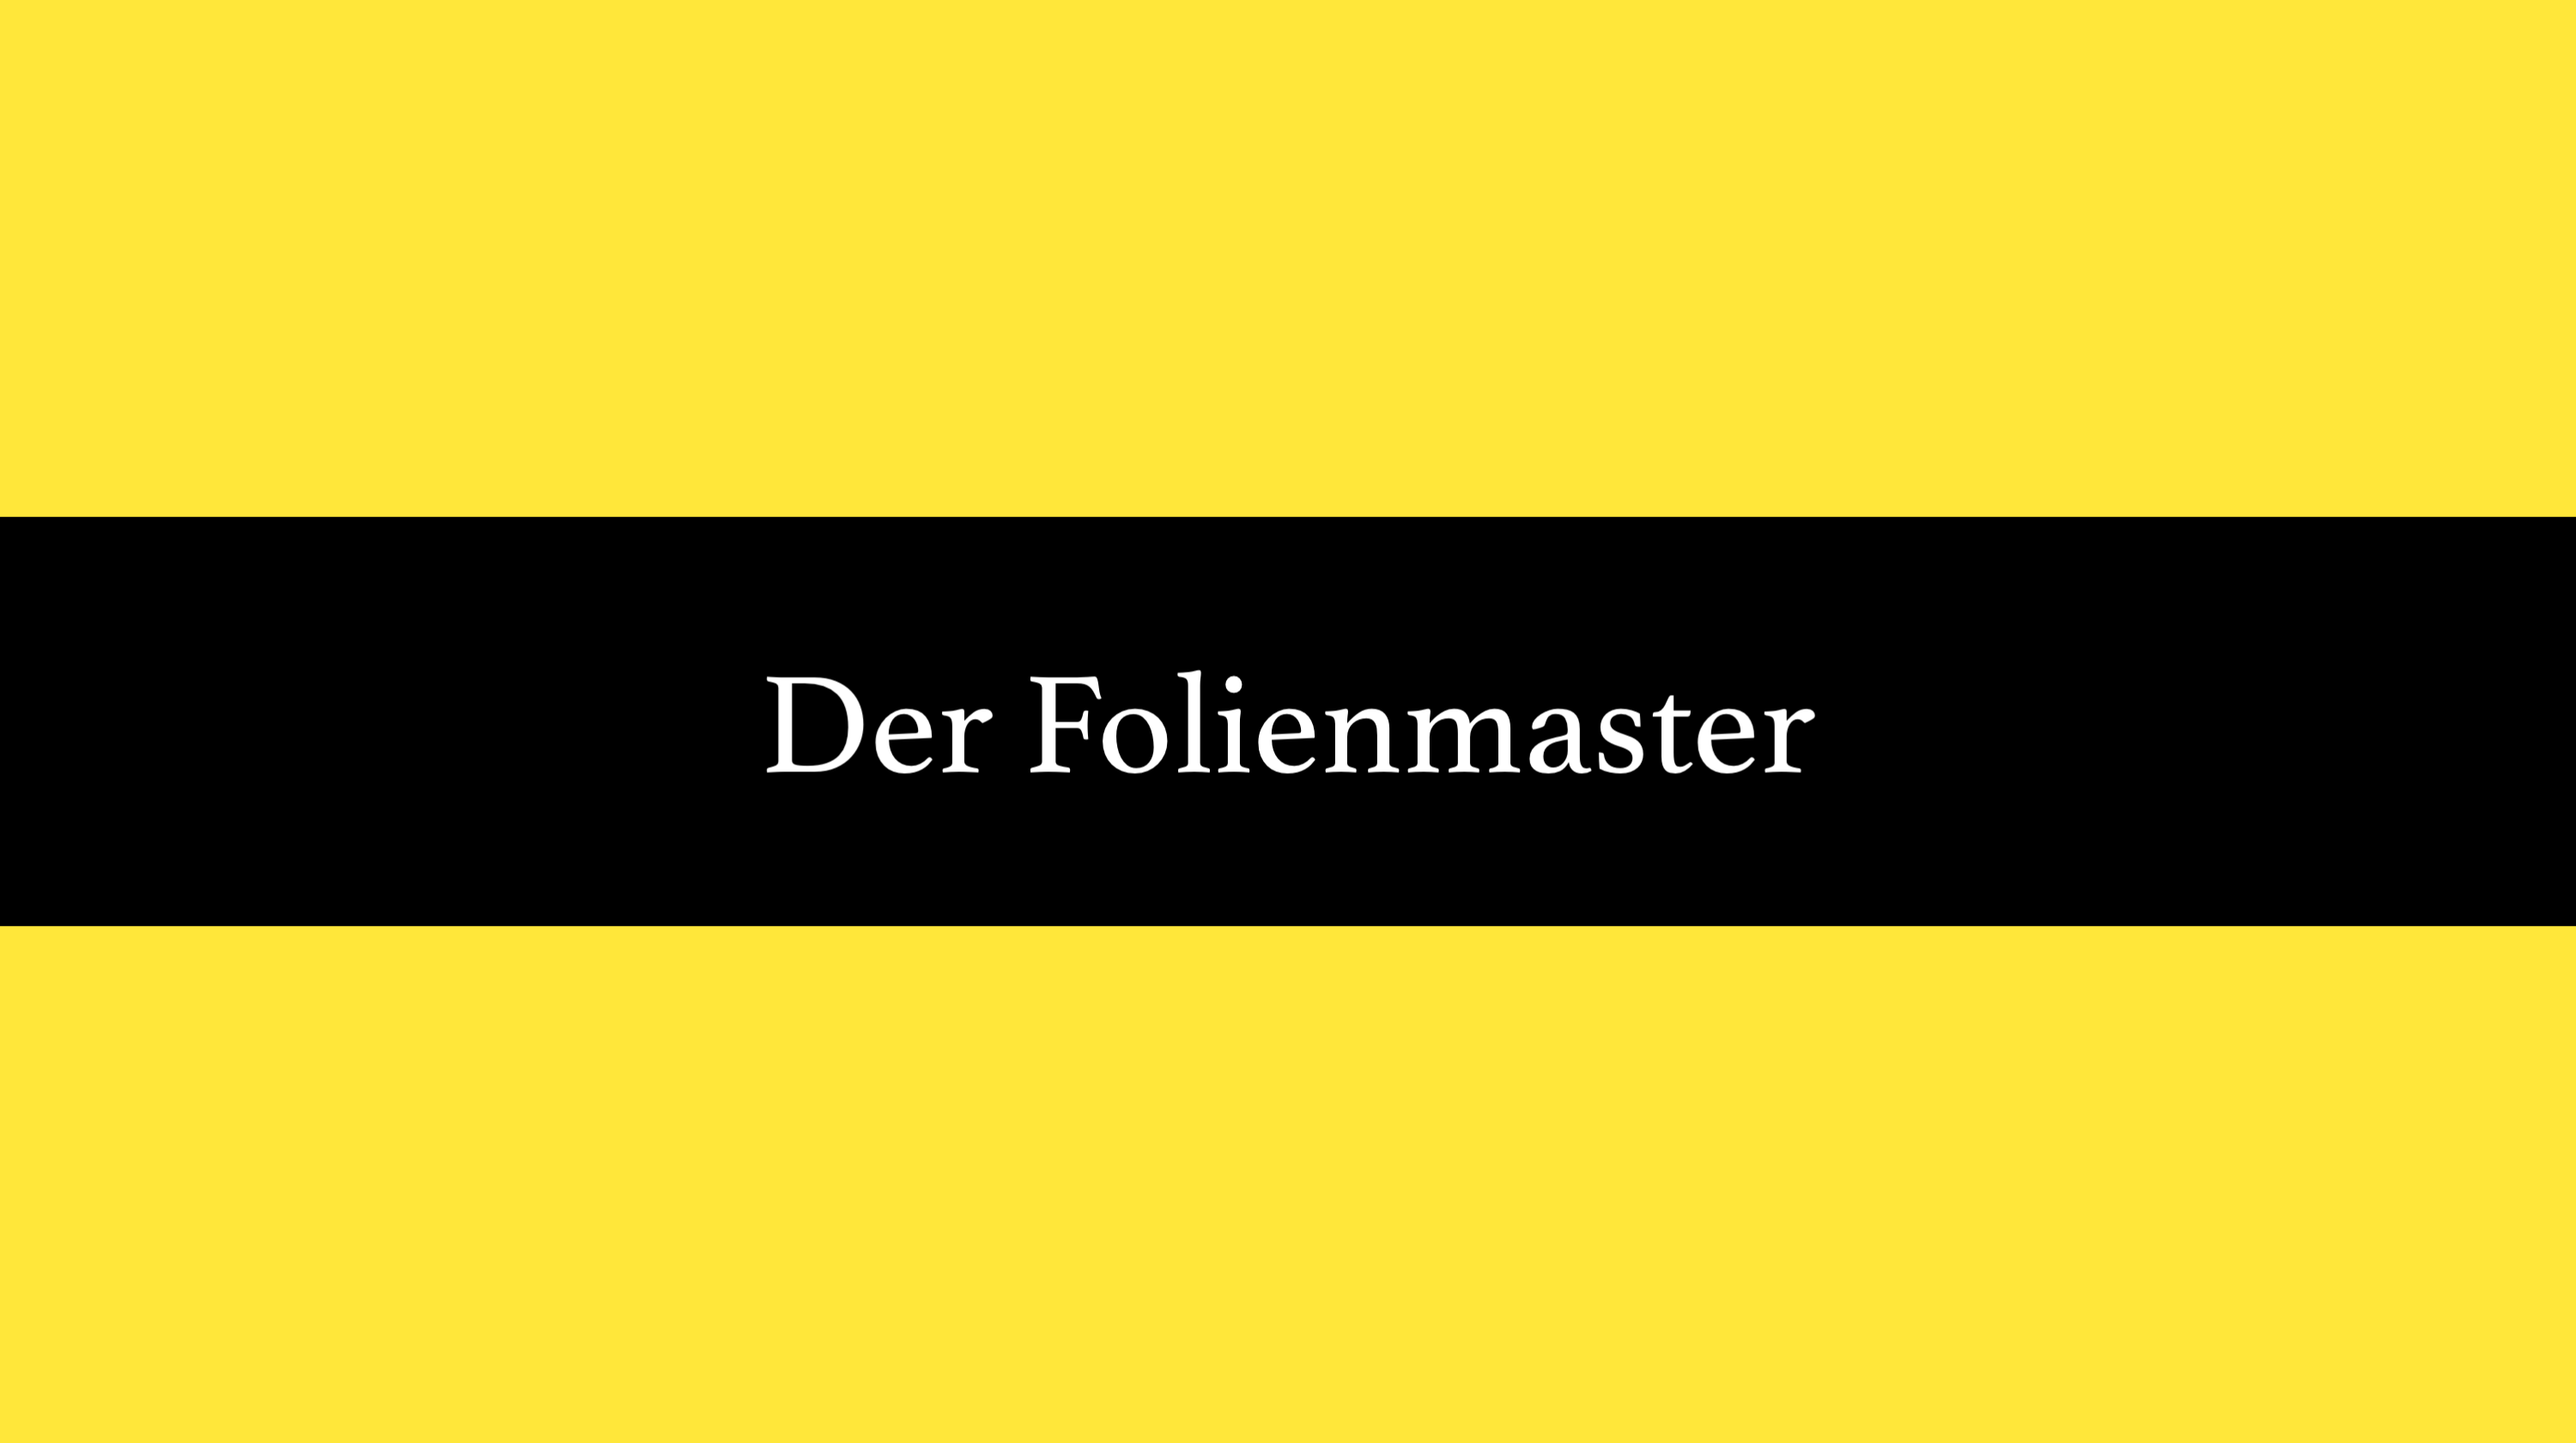 Der Folienmaster in Powerpoint